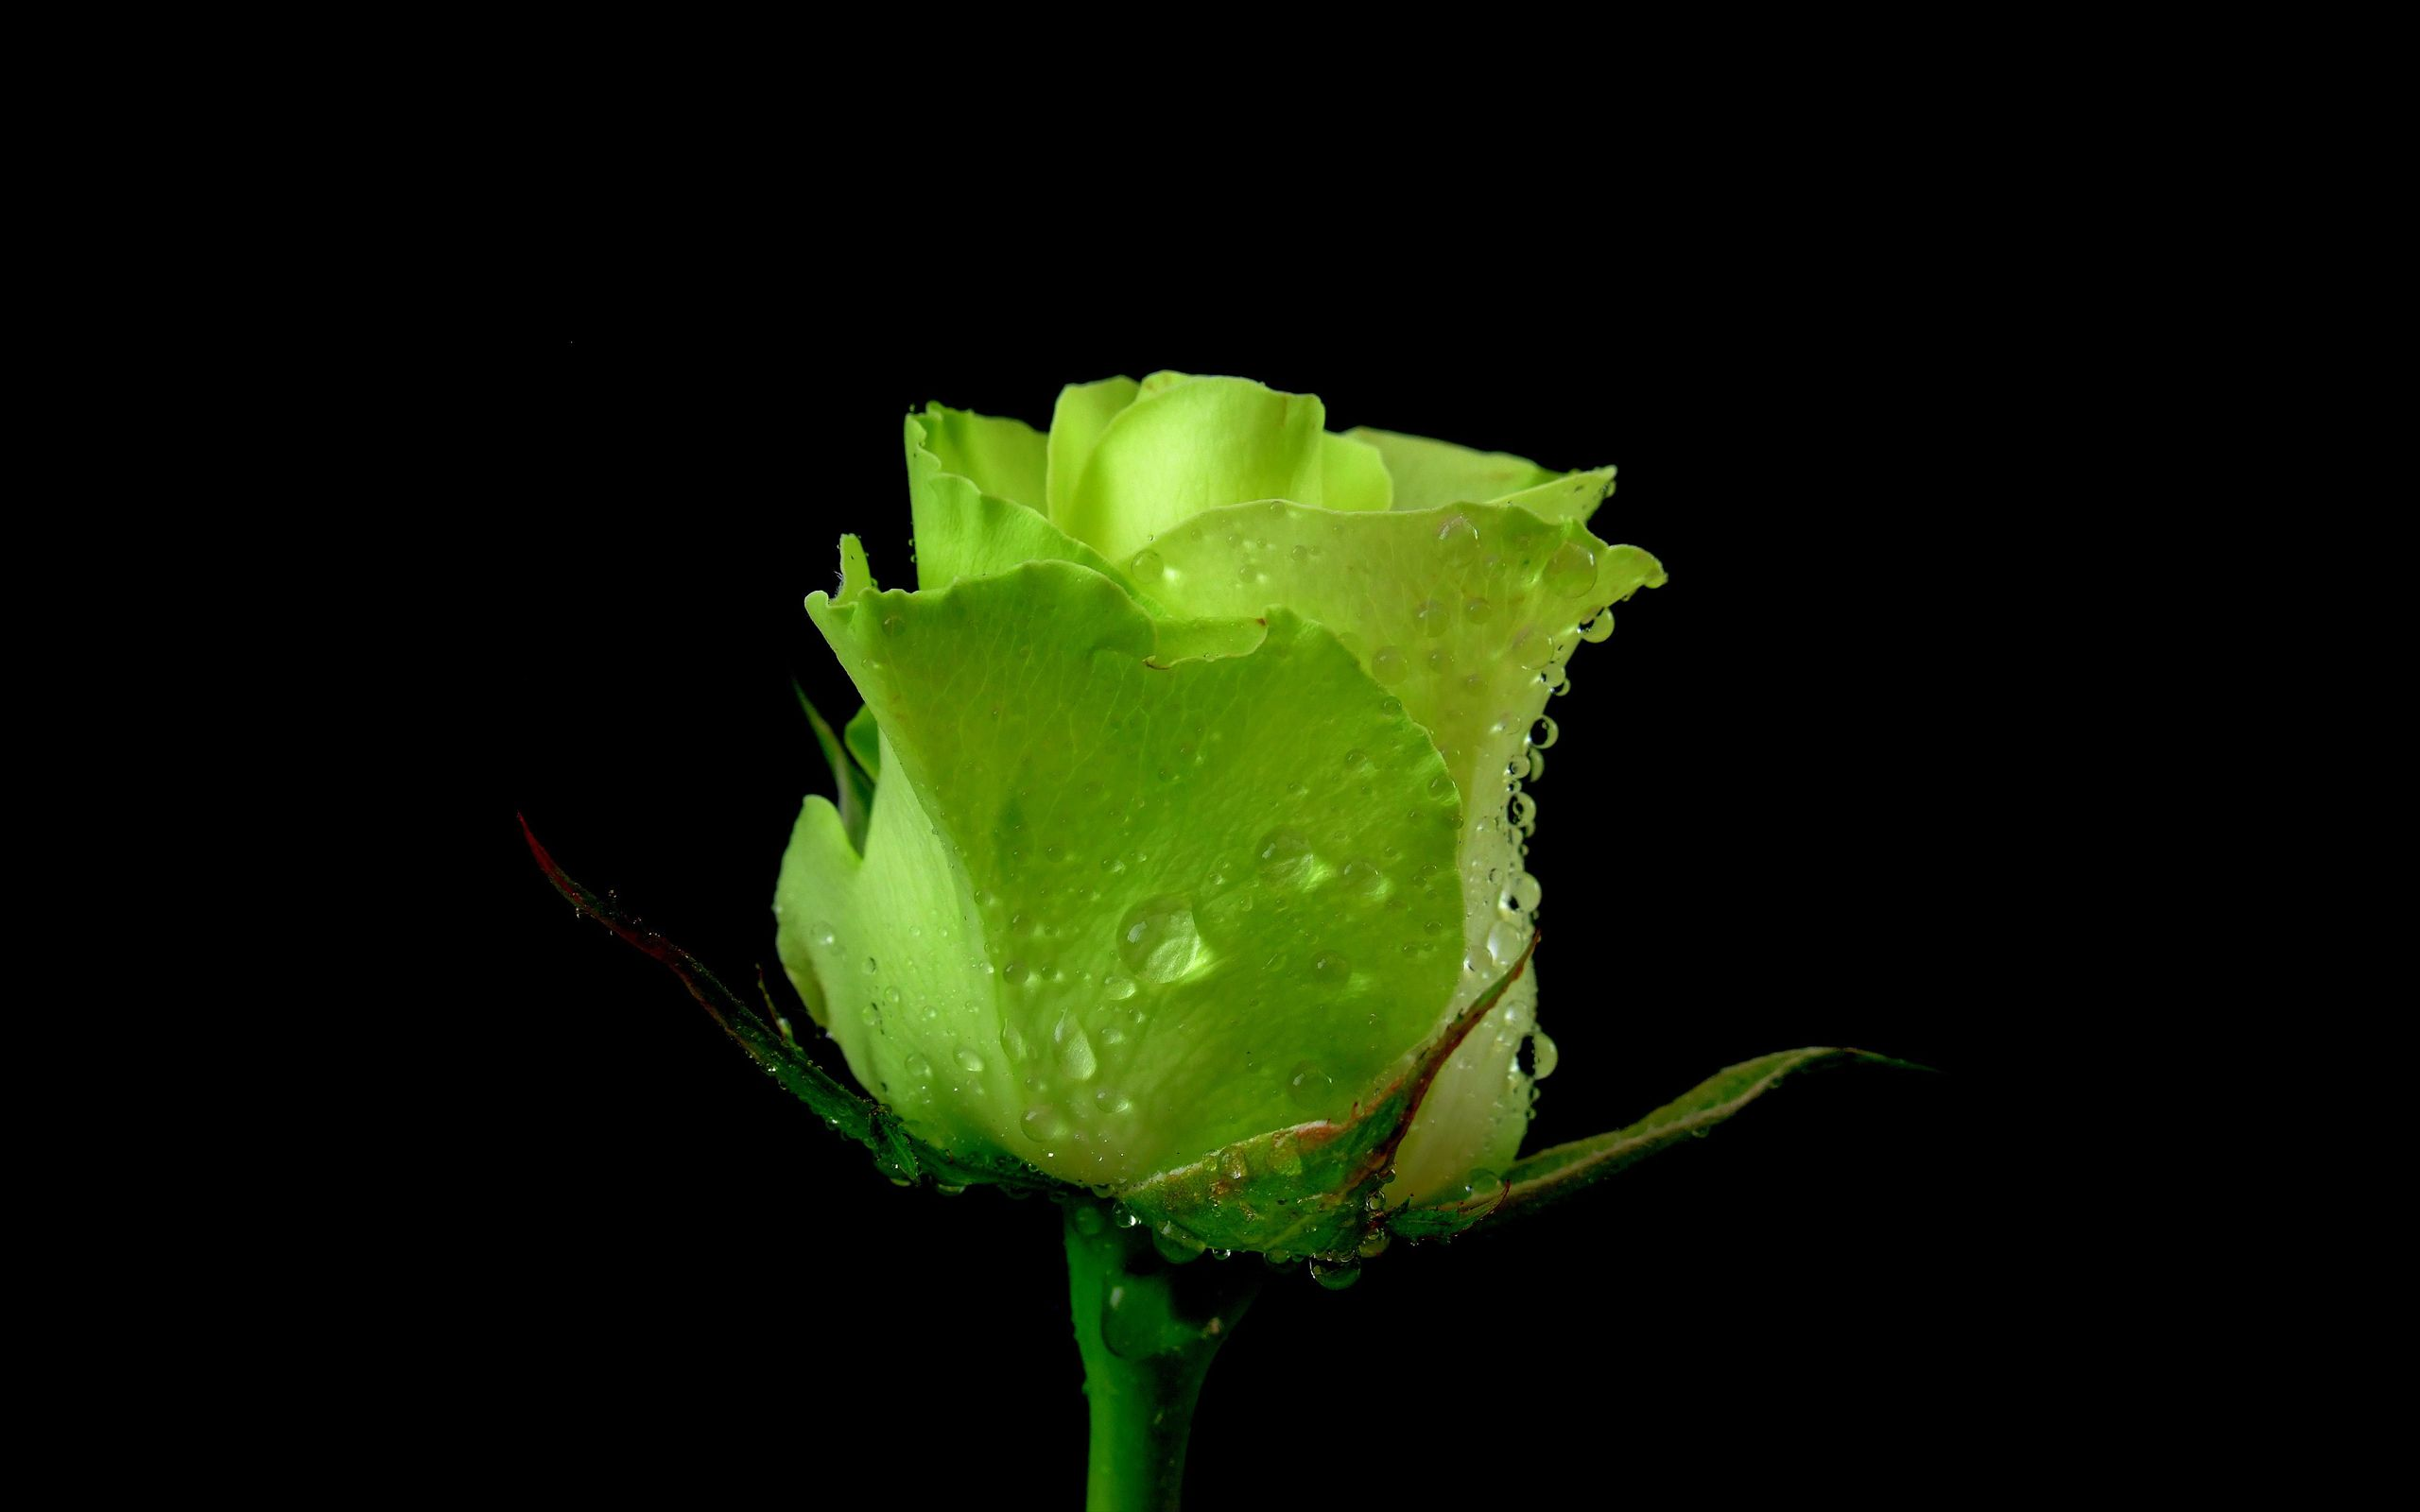 I want to add a green rose bush to my garden colour all things